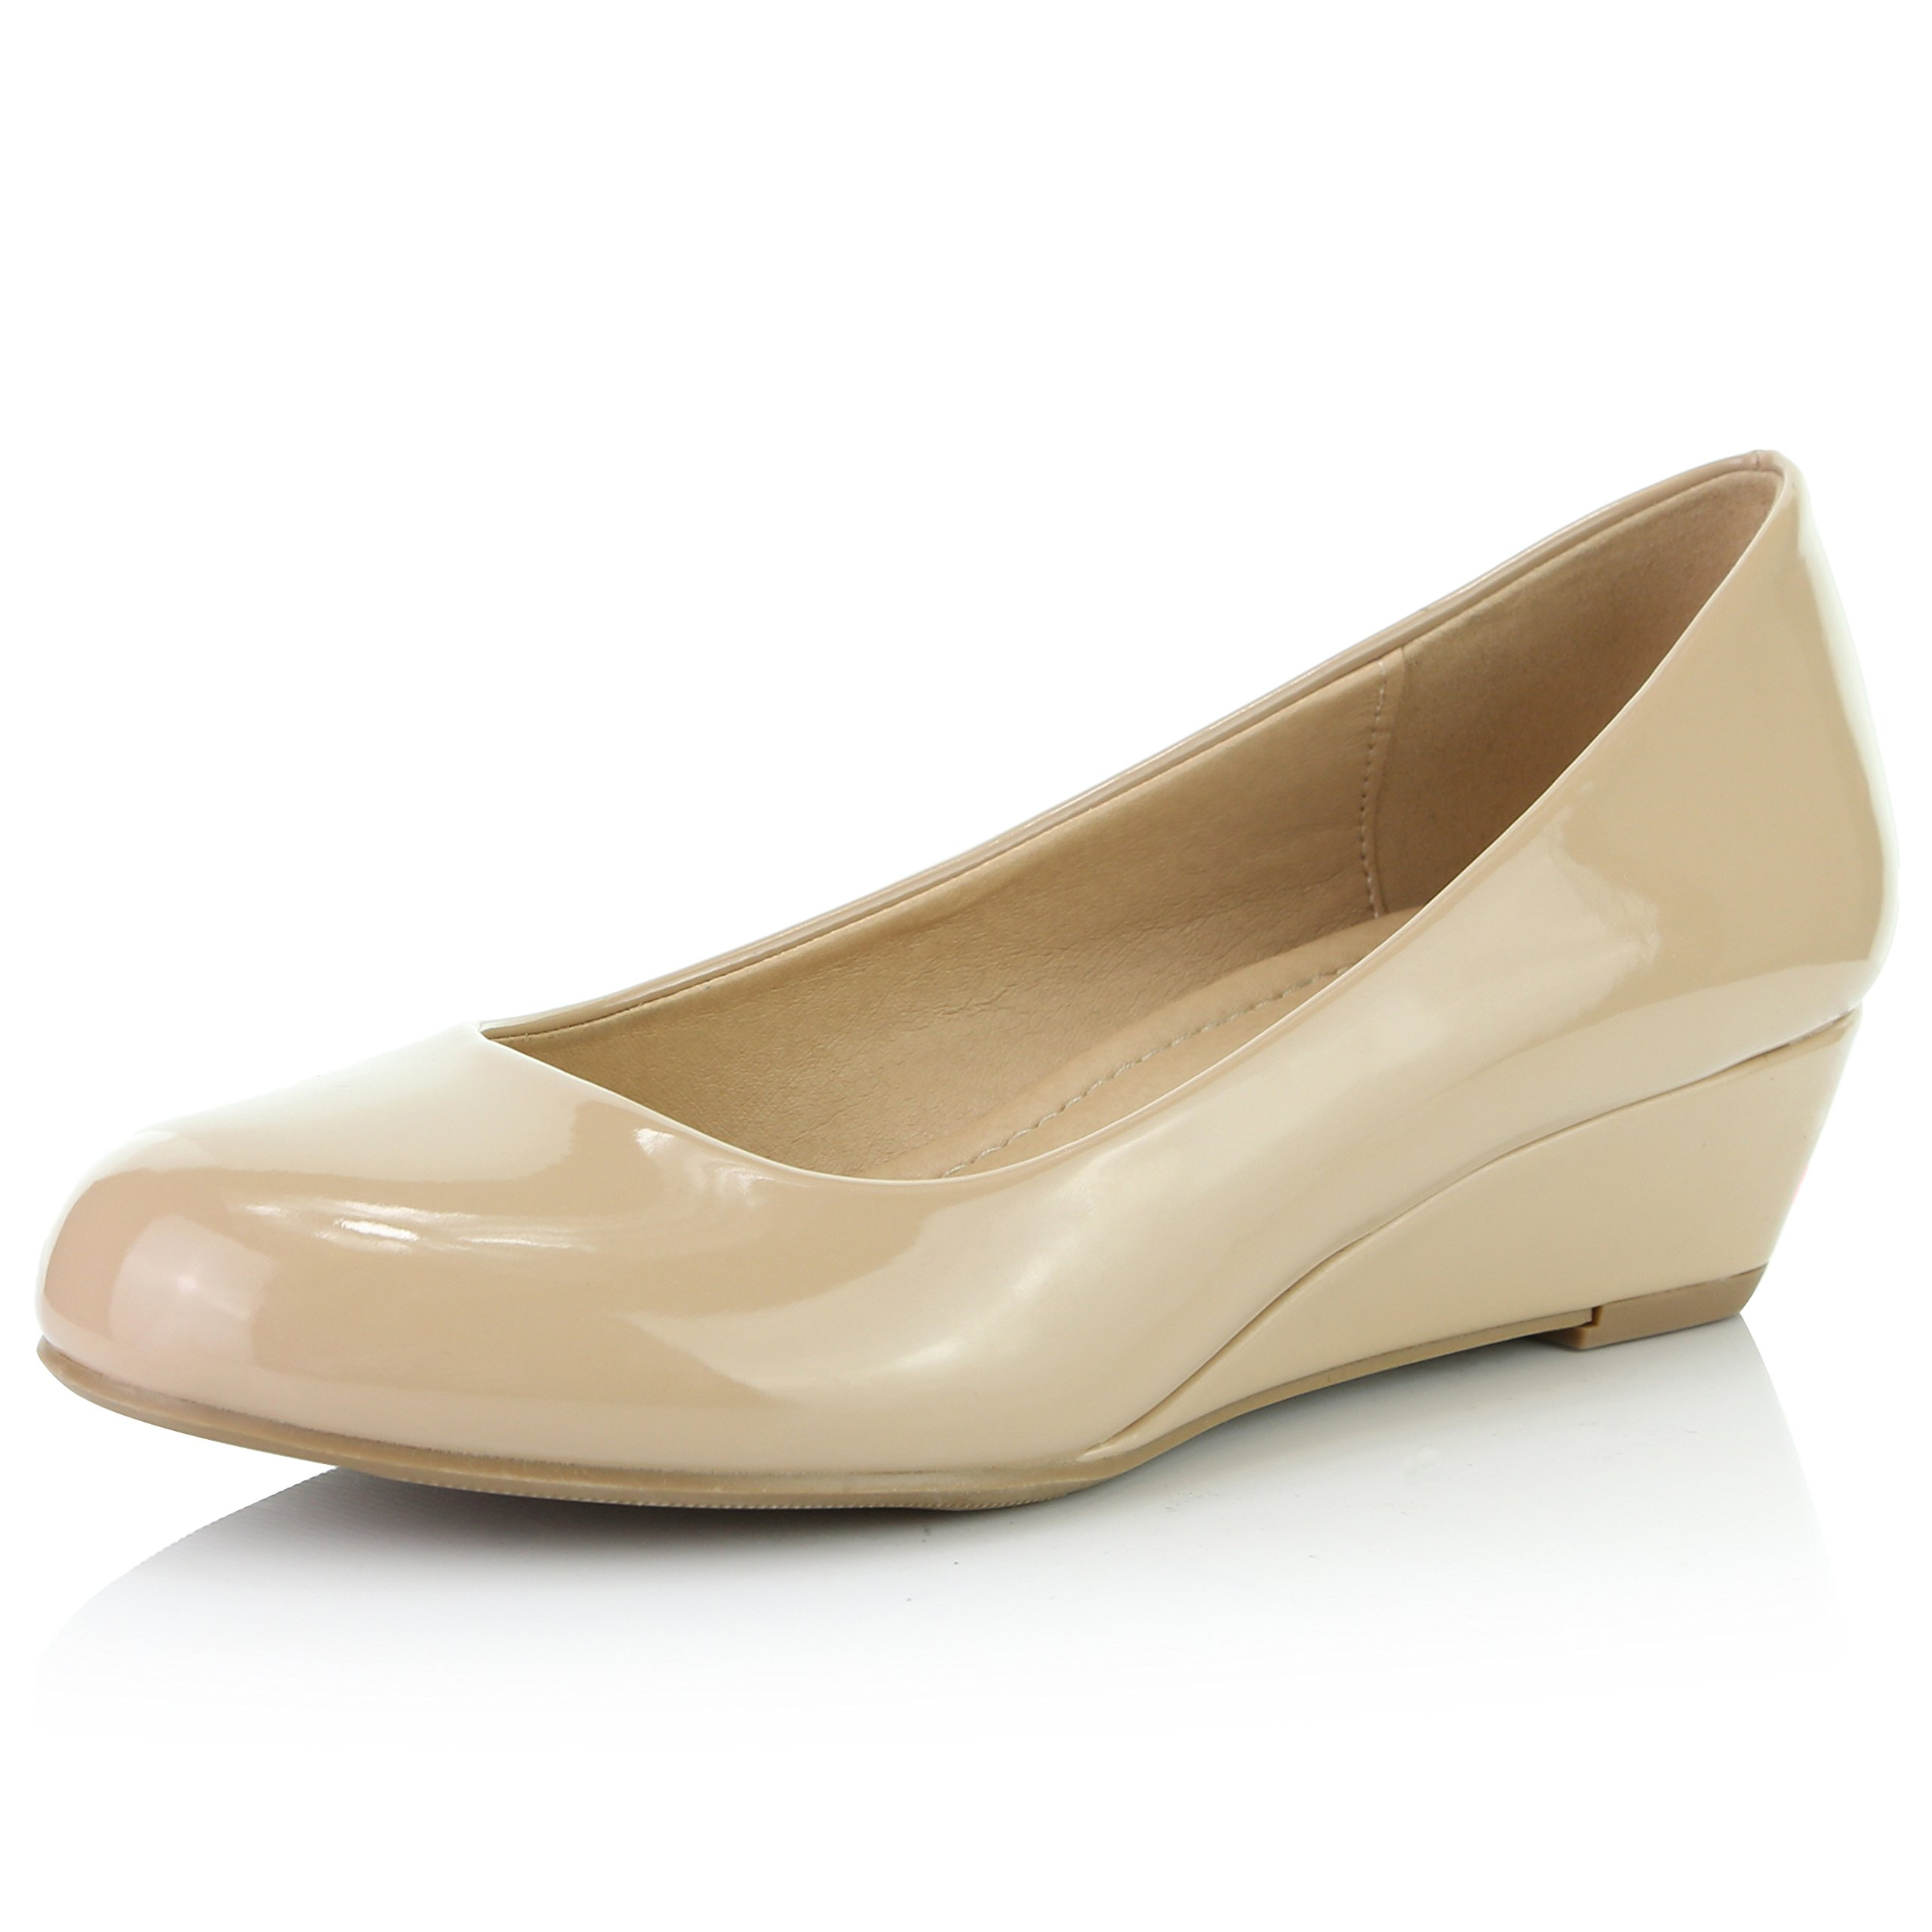 DailyShoes Women's Comfortable Fashion Low Heels Round Toe Wedge Pumps Shoes, Beige Patent Leather, 11 B(M) US